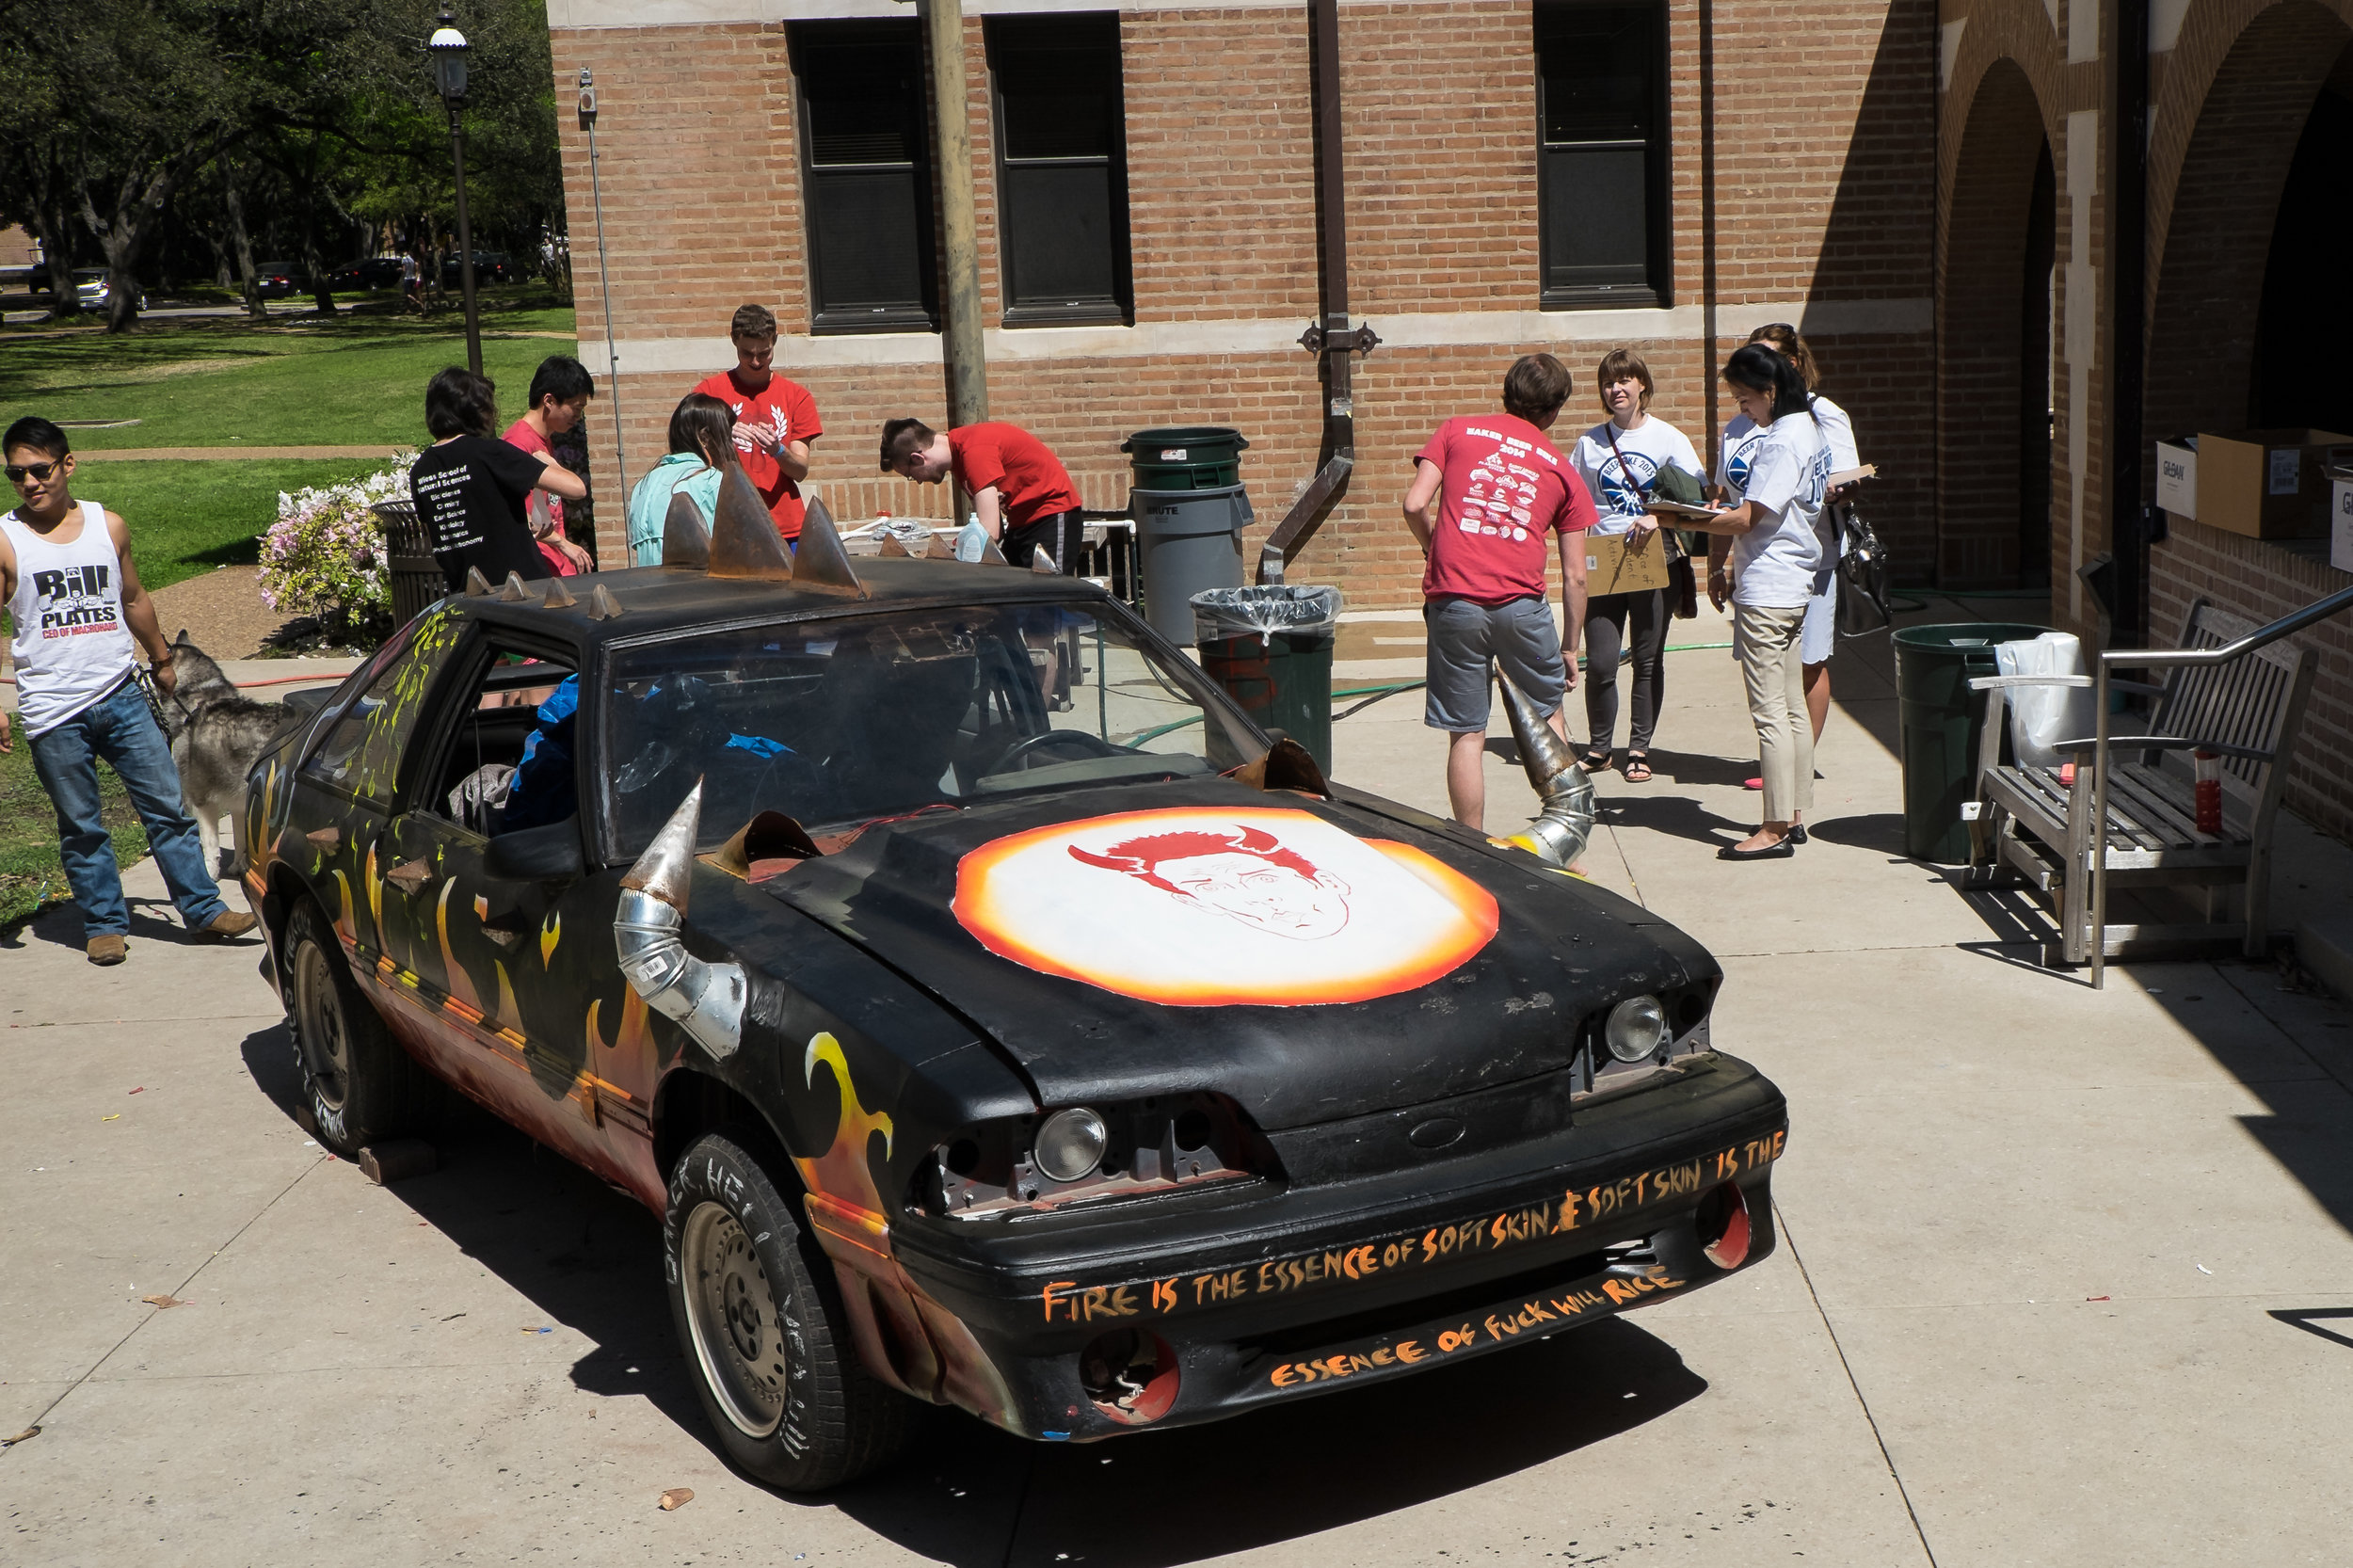 The Baker Hell Car from Beer Bike 2015